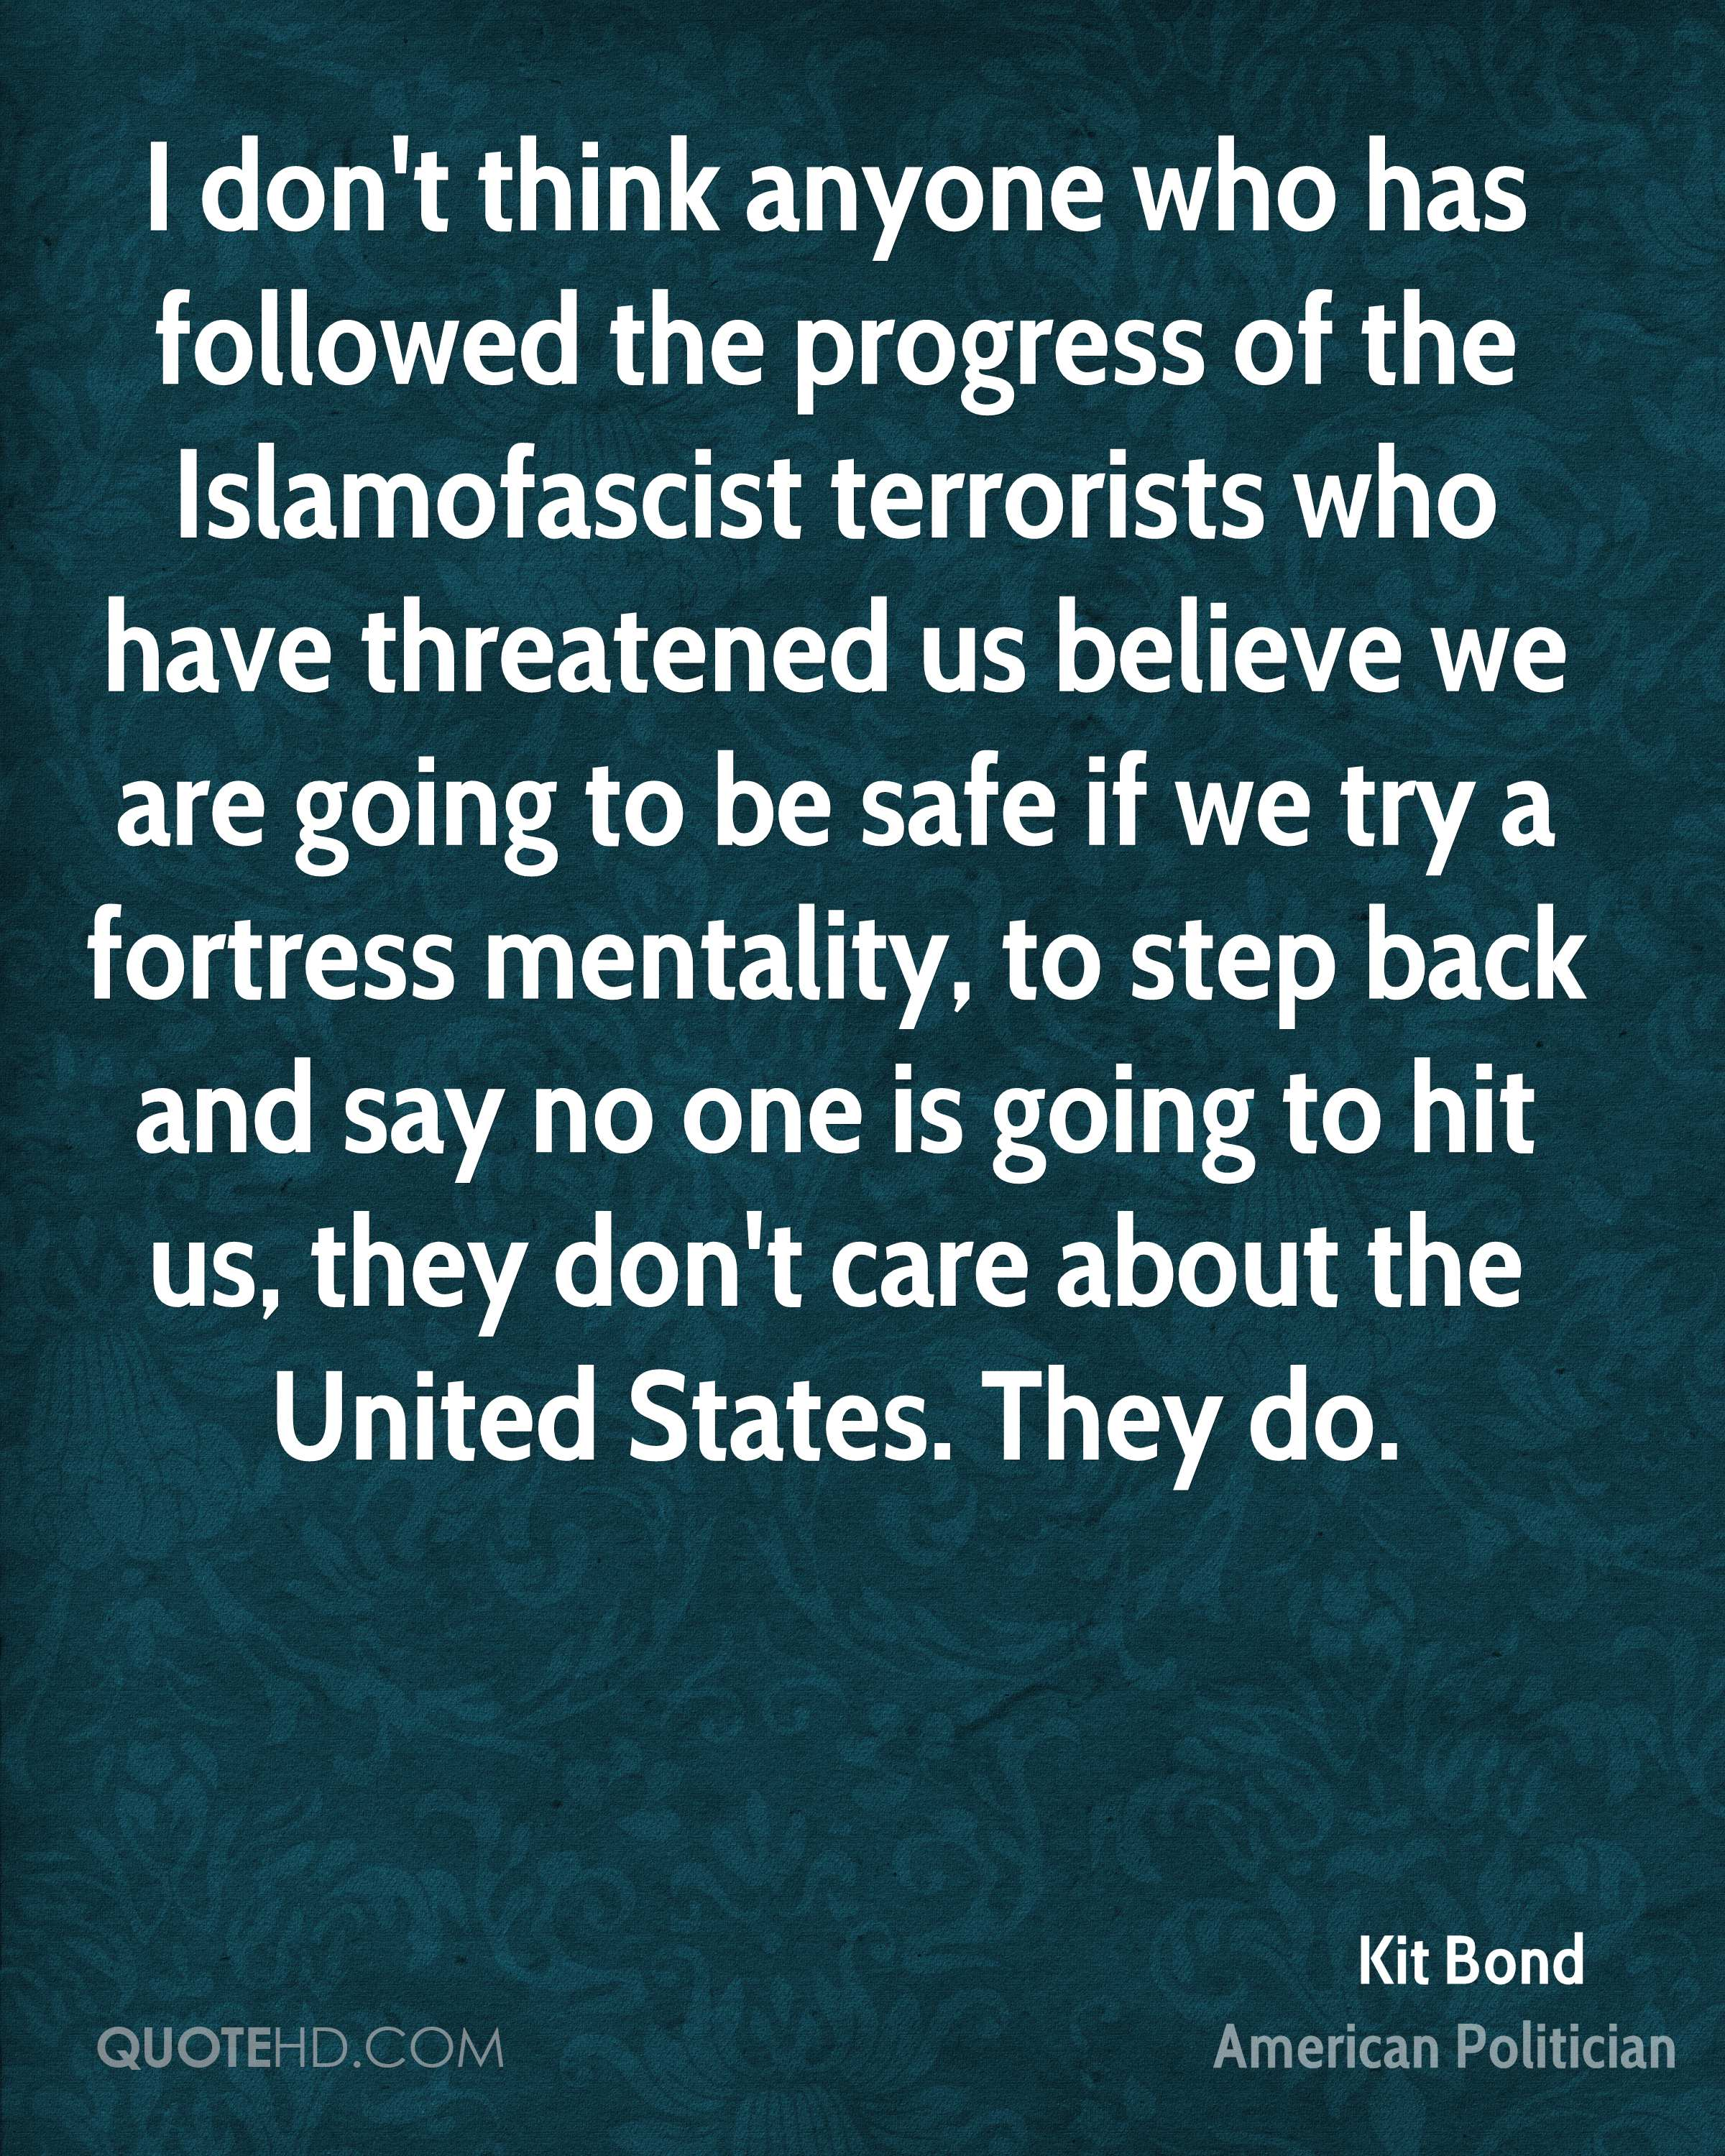 I don't think anyone who has followed the progress of the Islamofascist terrorists who have threatened us believe we are going to be safe if we try a fortress mentality, to step back and say no one is going to hit us, they don't care about the United States. They do.